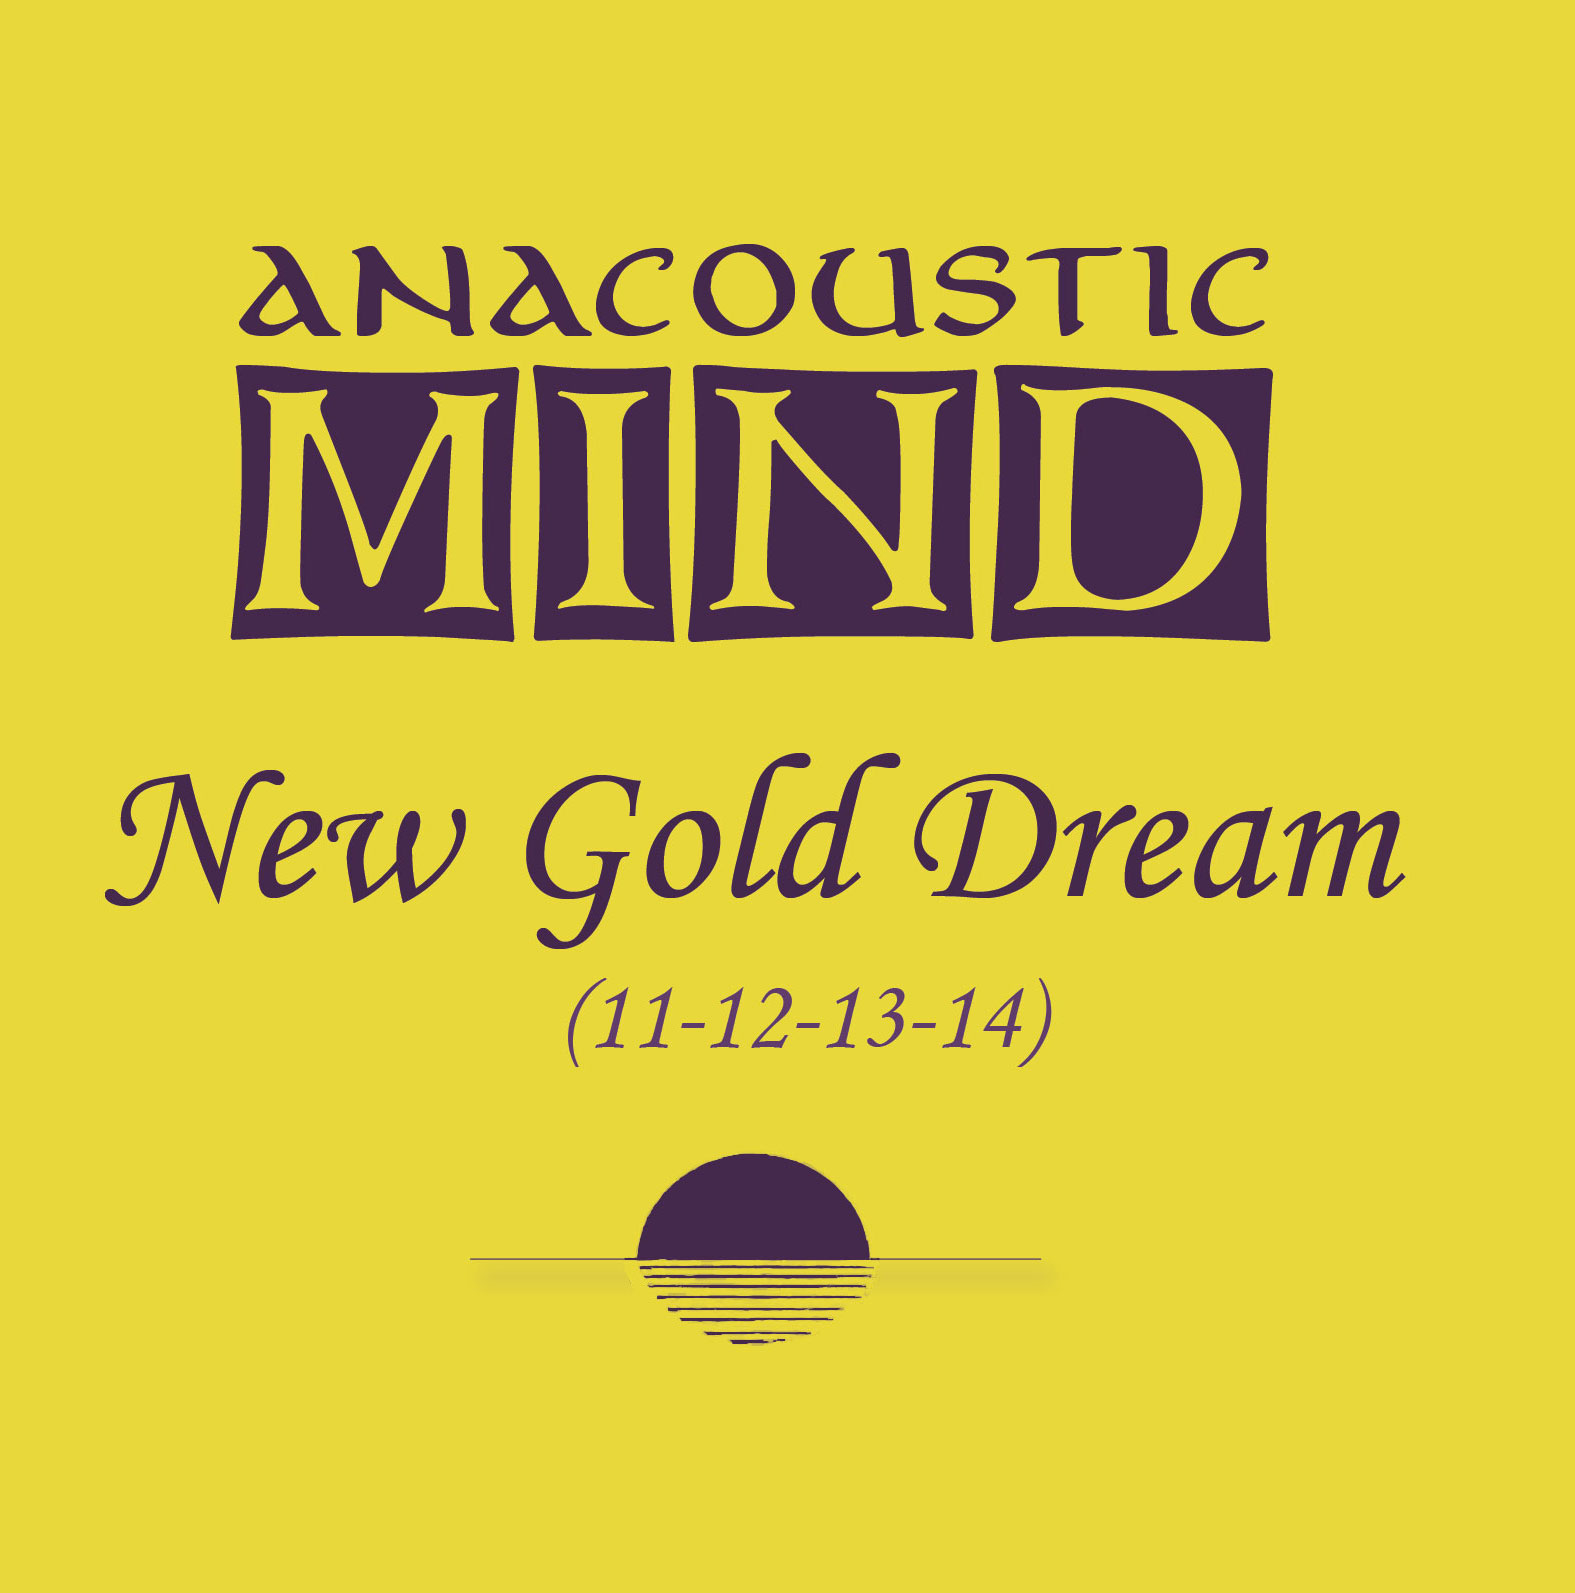 jaquettes2/Anacoustic-Mind_New-Gold-Dream_11-12-13-14.jpg